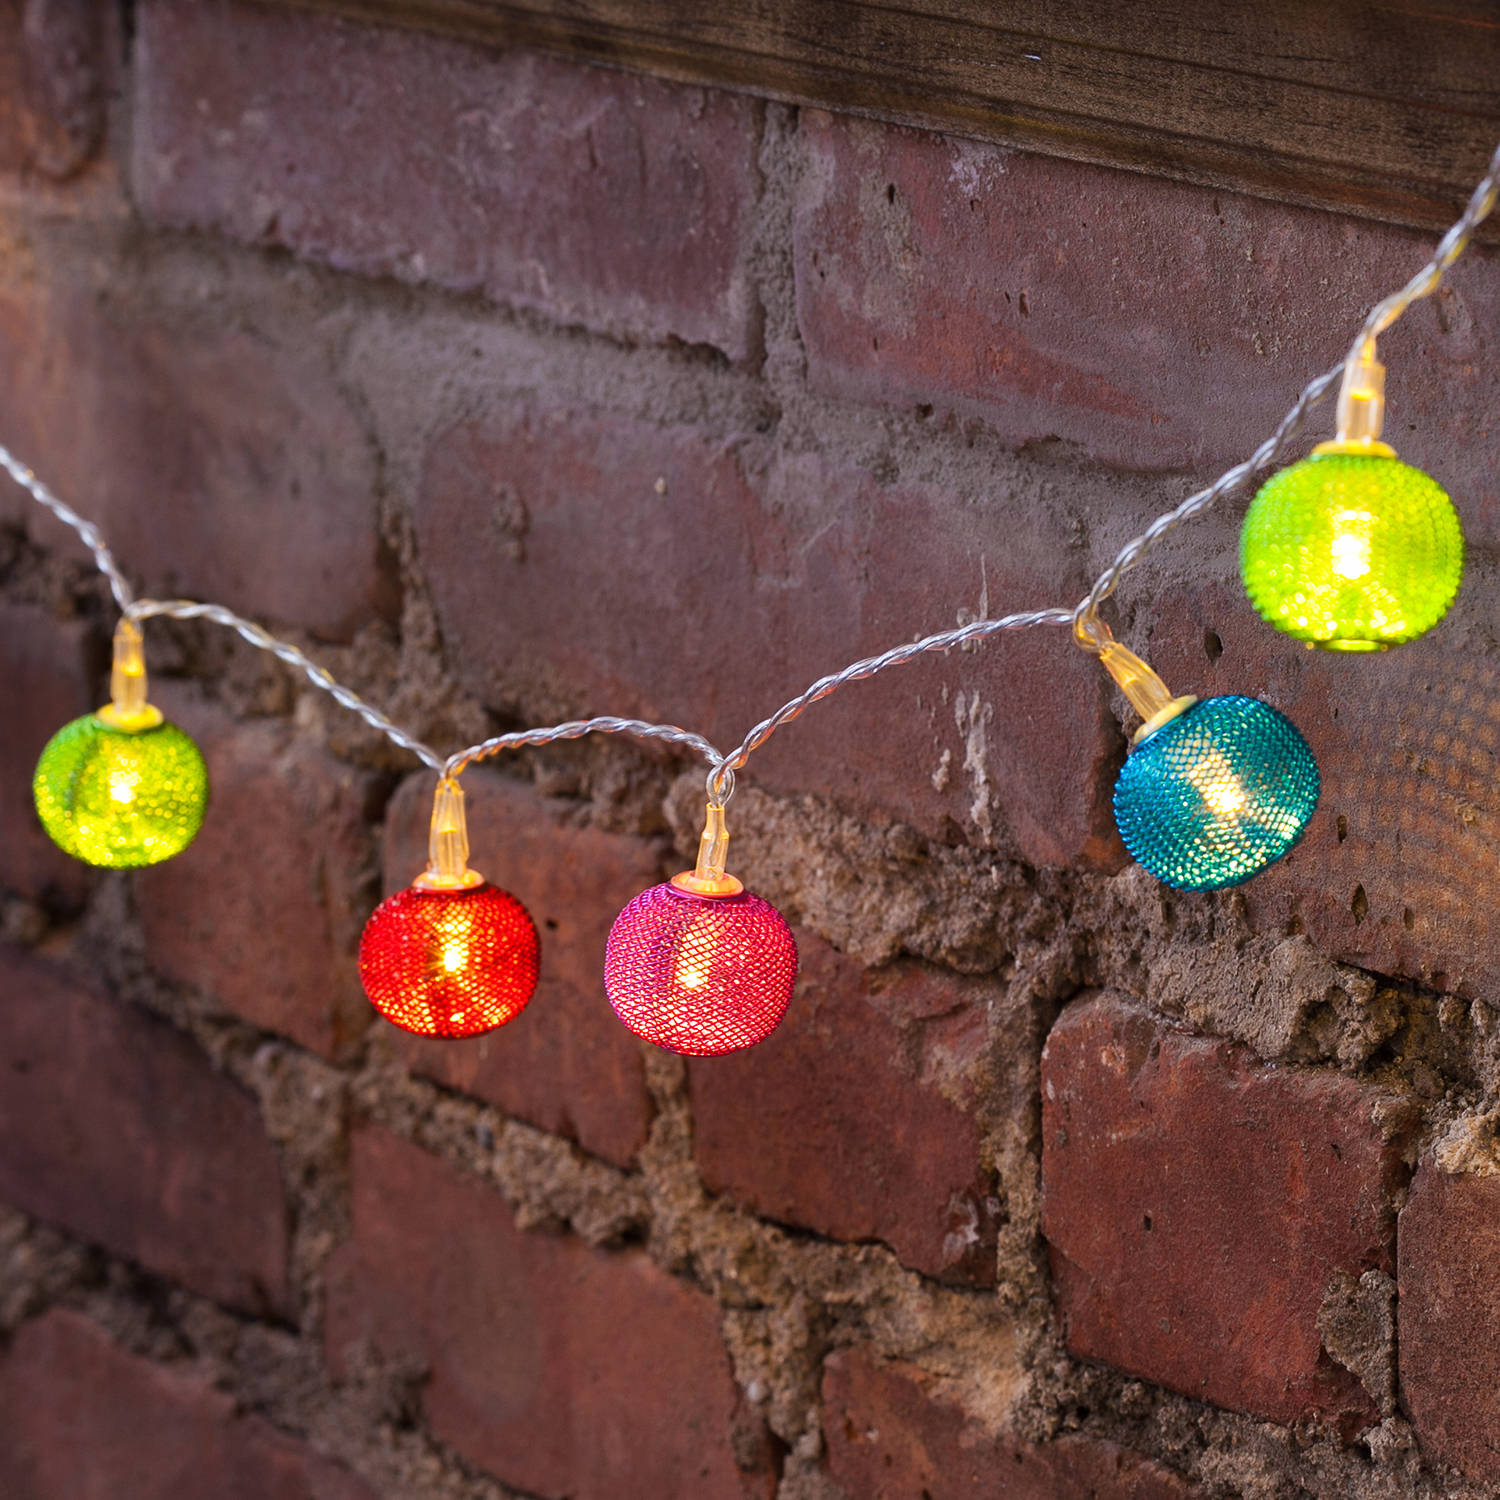 Globe String Lights Battery Operated Leds : Lights.com String Lights Decorative String Lights Mesh Multicolor Battery Operated String ...